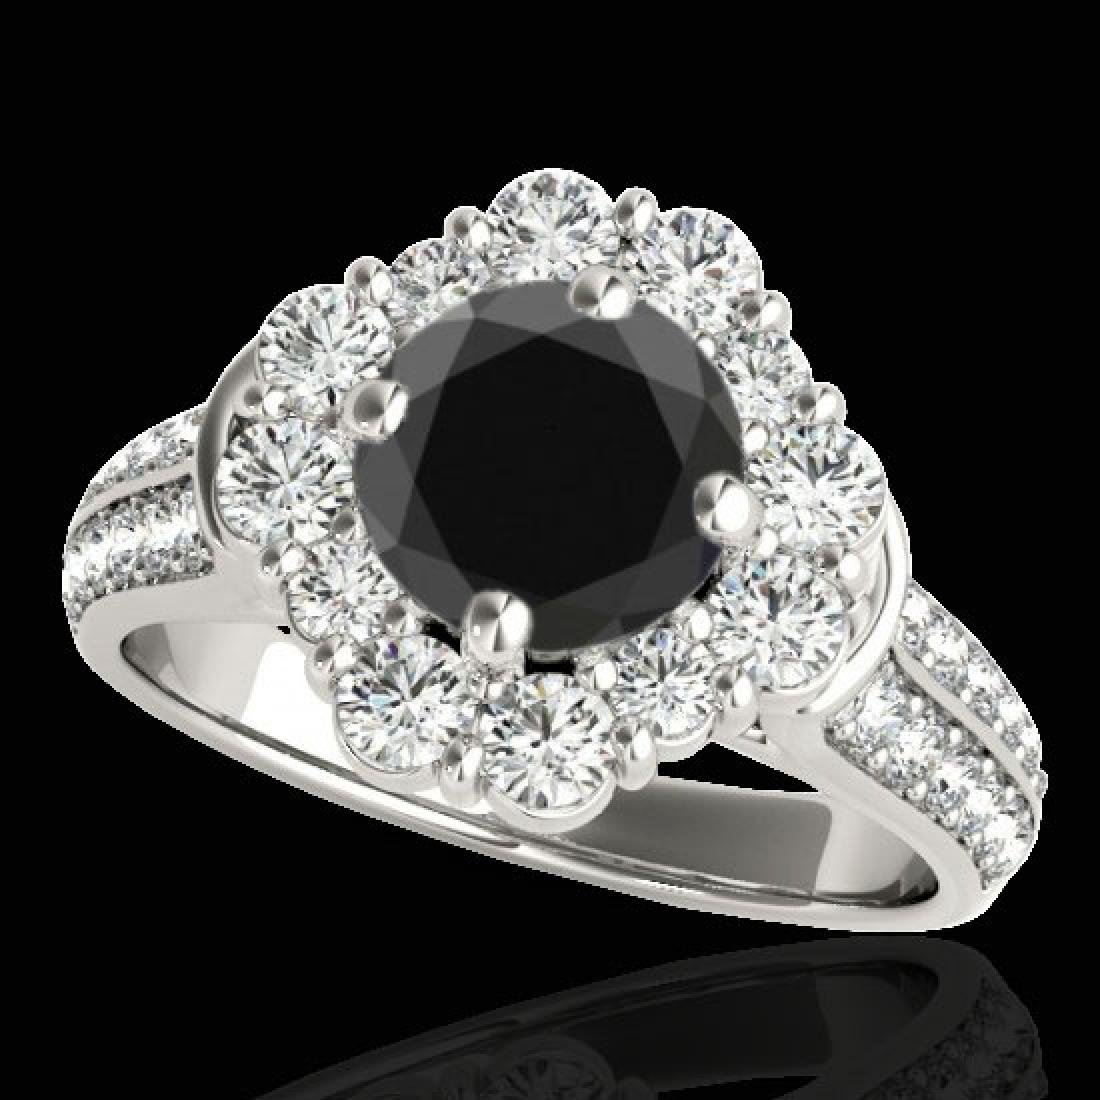 2.81 CTW Certified VS Black Diamond Solitaire Halo Ring